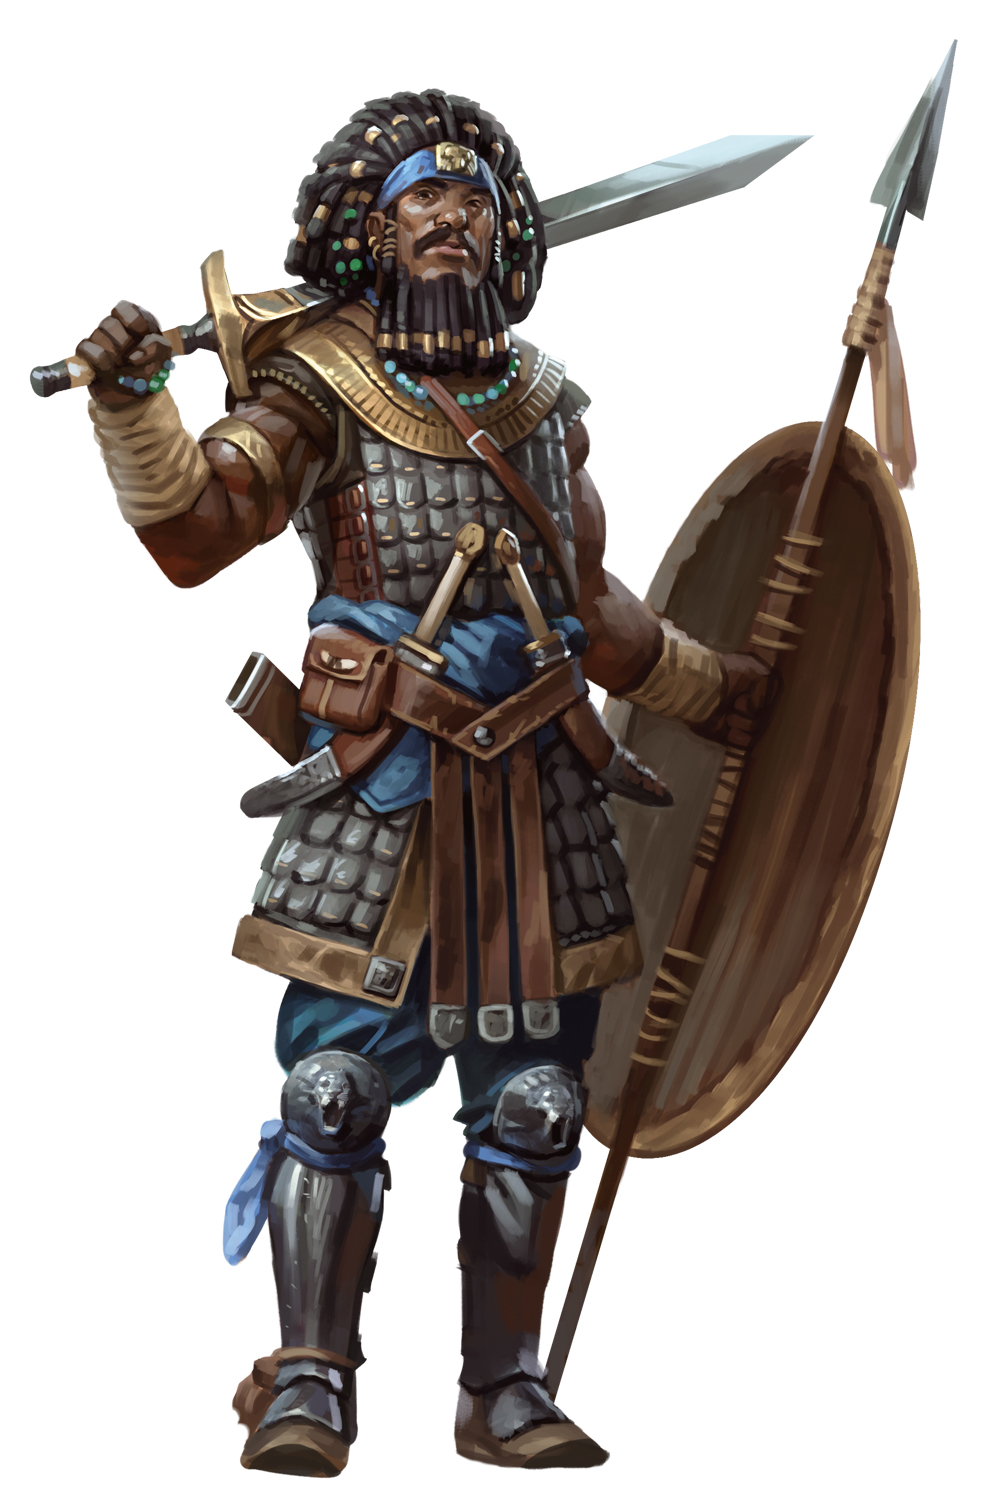 Pact of the Tome: Breaking Down 5E Class Design, Part 1: Defining